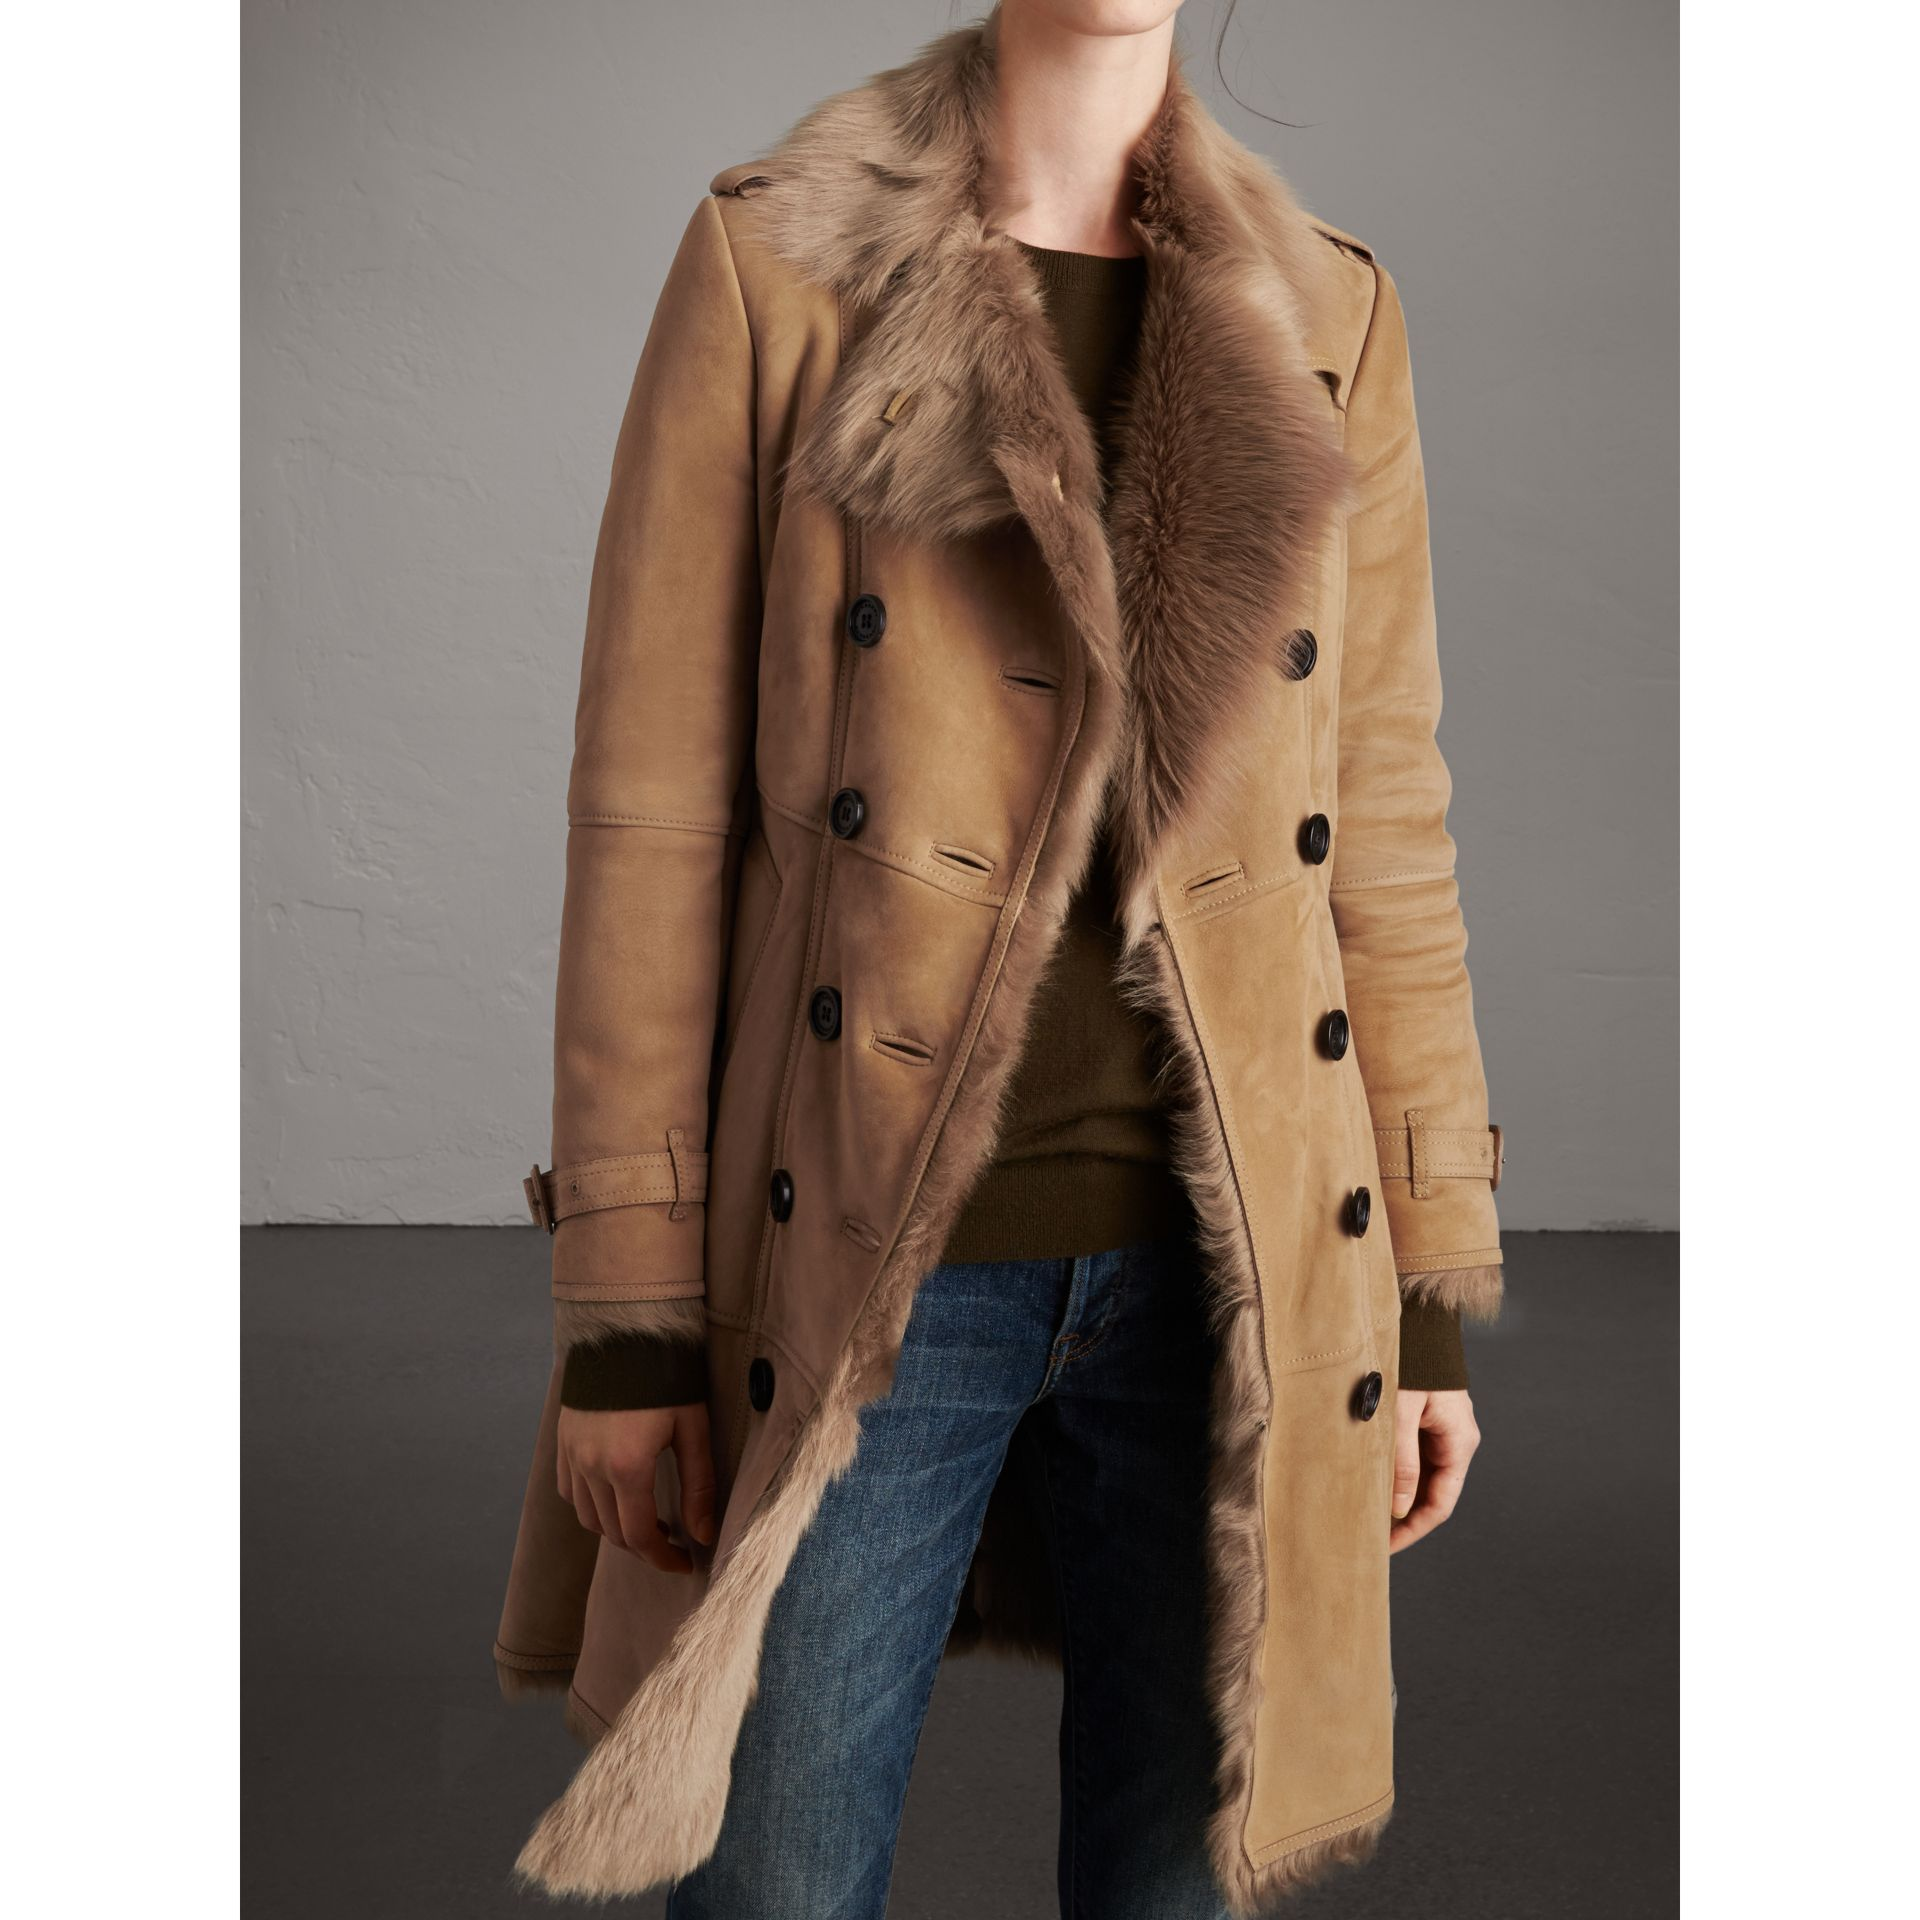 Shearling Trench Coat in Camel - Women | Burberry Hong Kong - gallery image 5